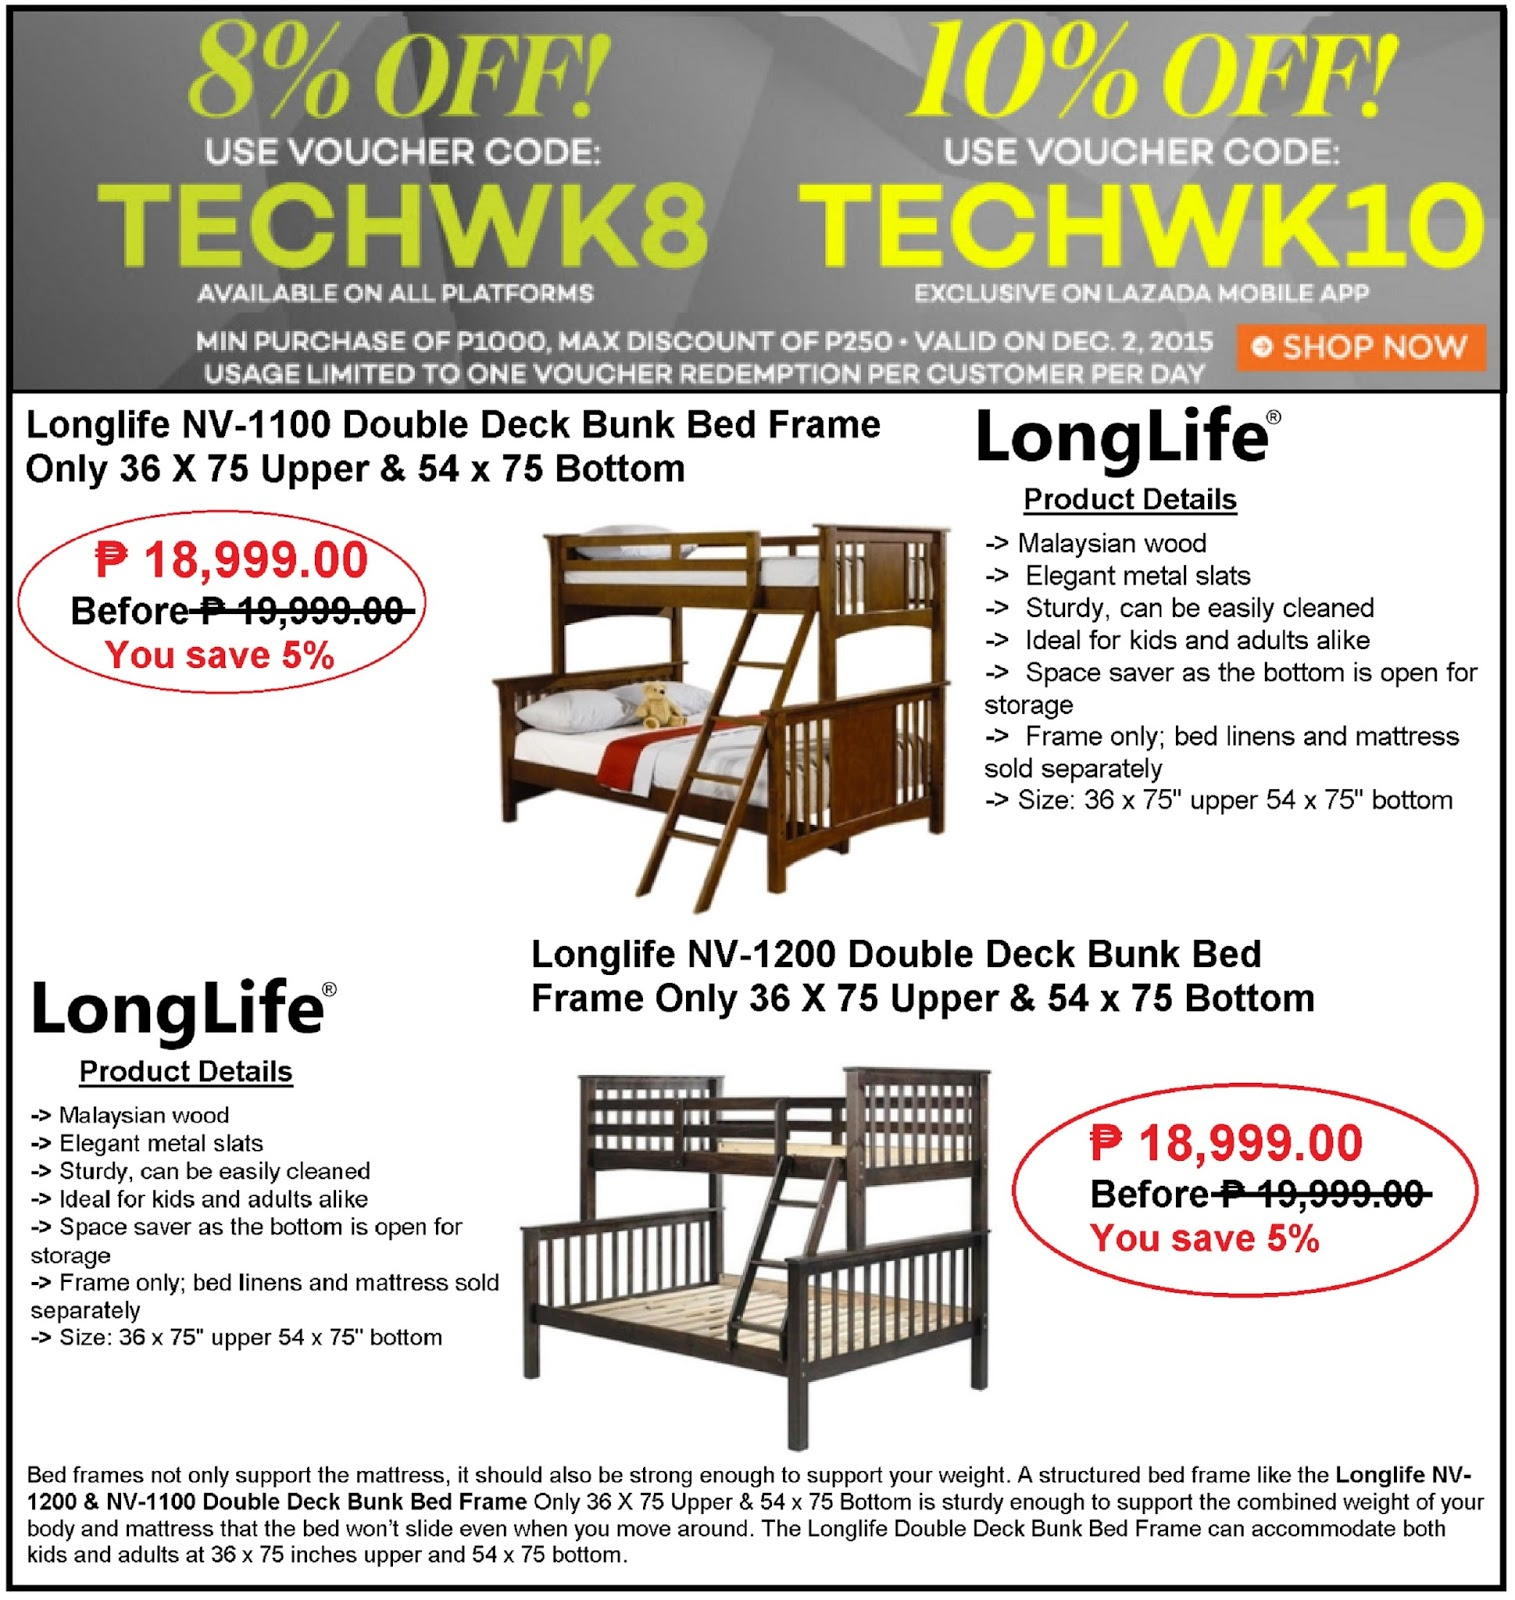 Wooden crib for sale cavite - Save 8 Up To 10 Off Discount On Longlife Double Deck Bunk Bed Frame Sale At Tech Week Promo